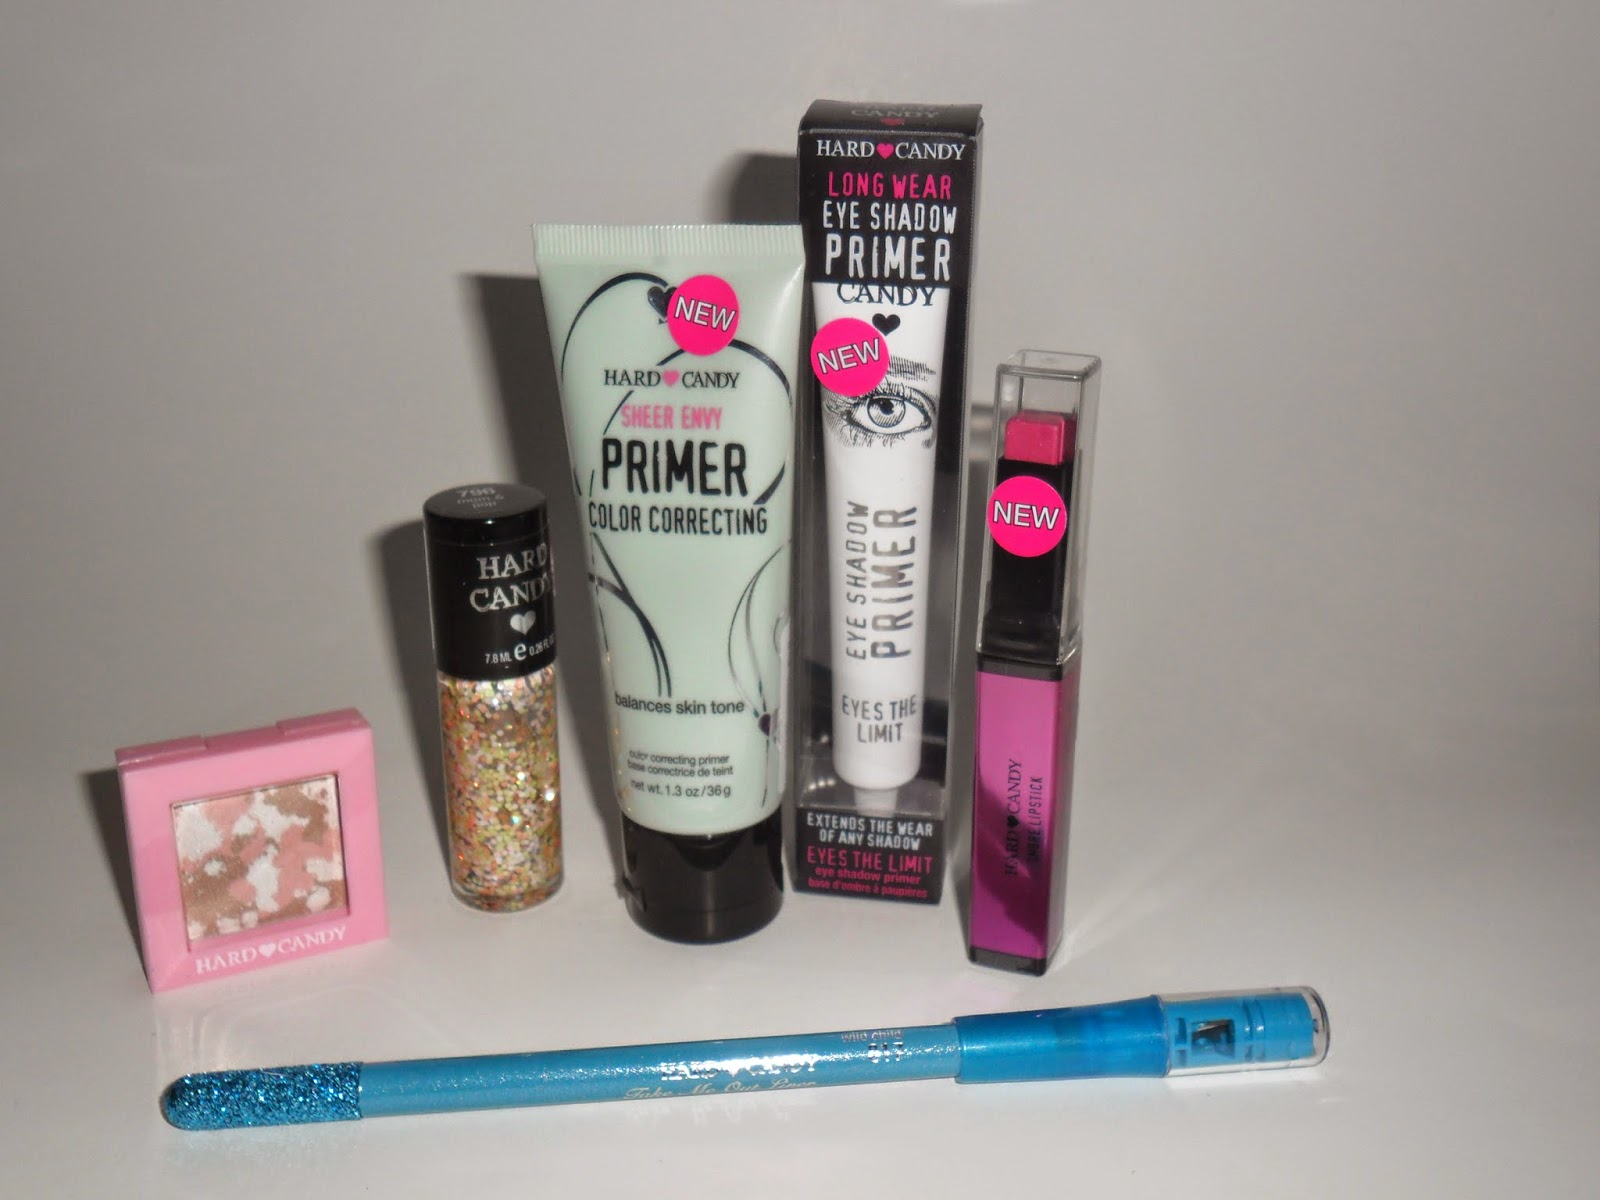 Hard Candy Sumptuous Beauty Bargains. Review.